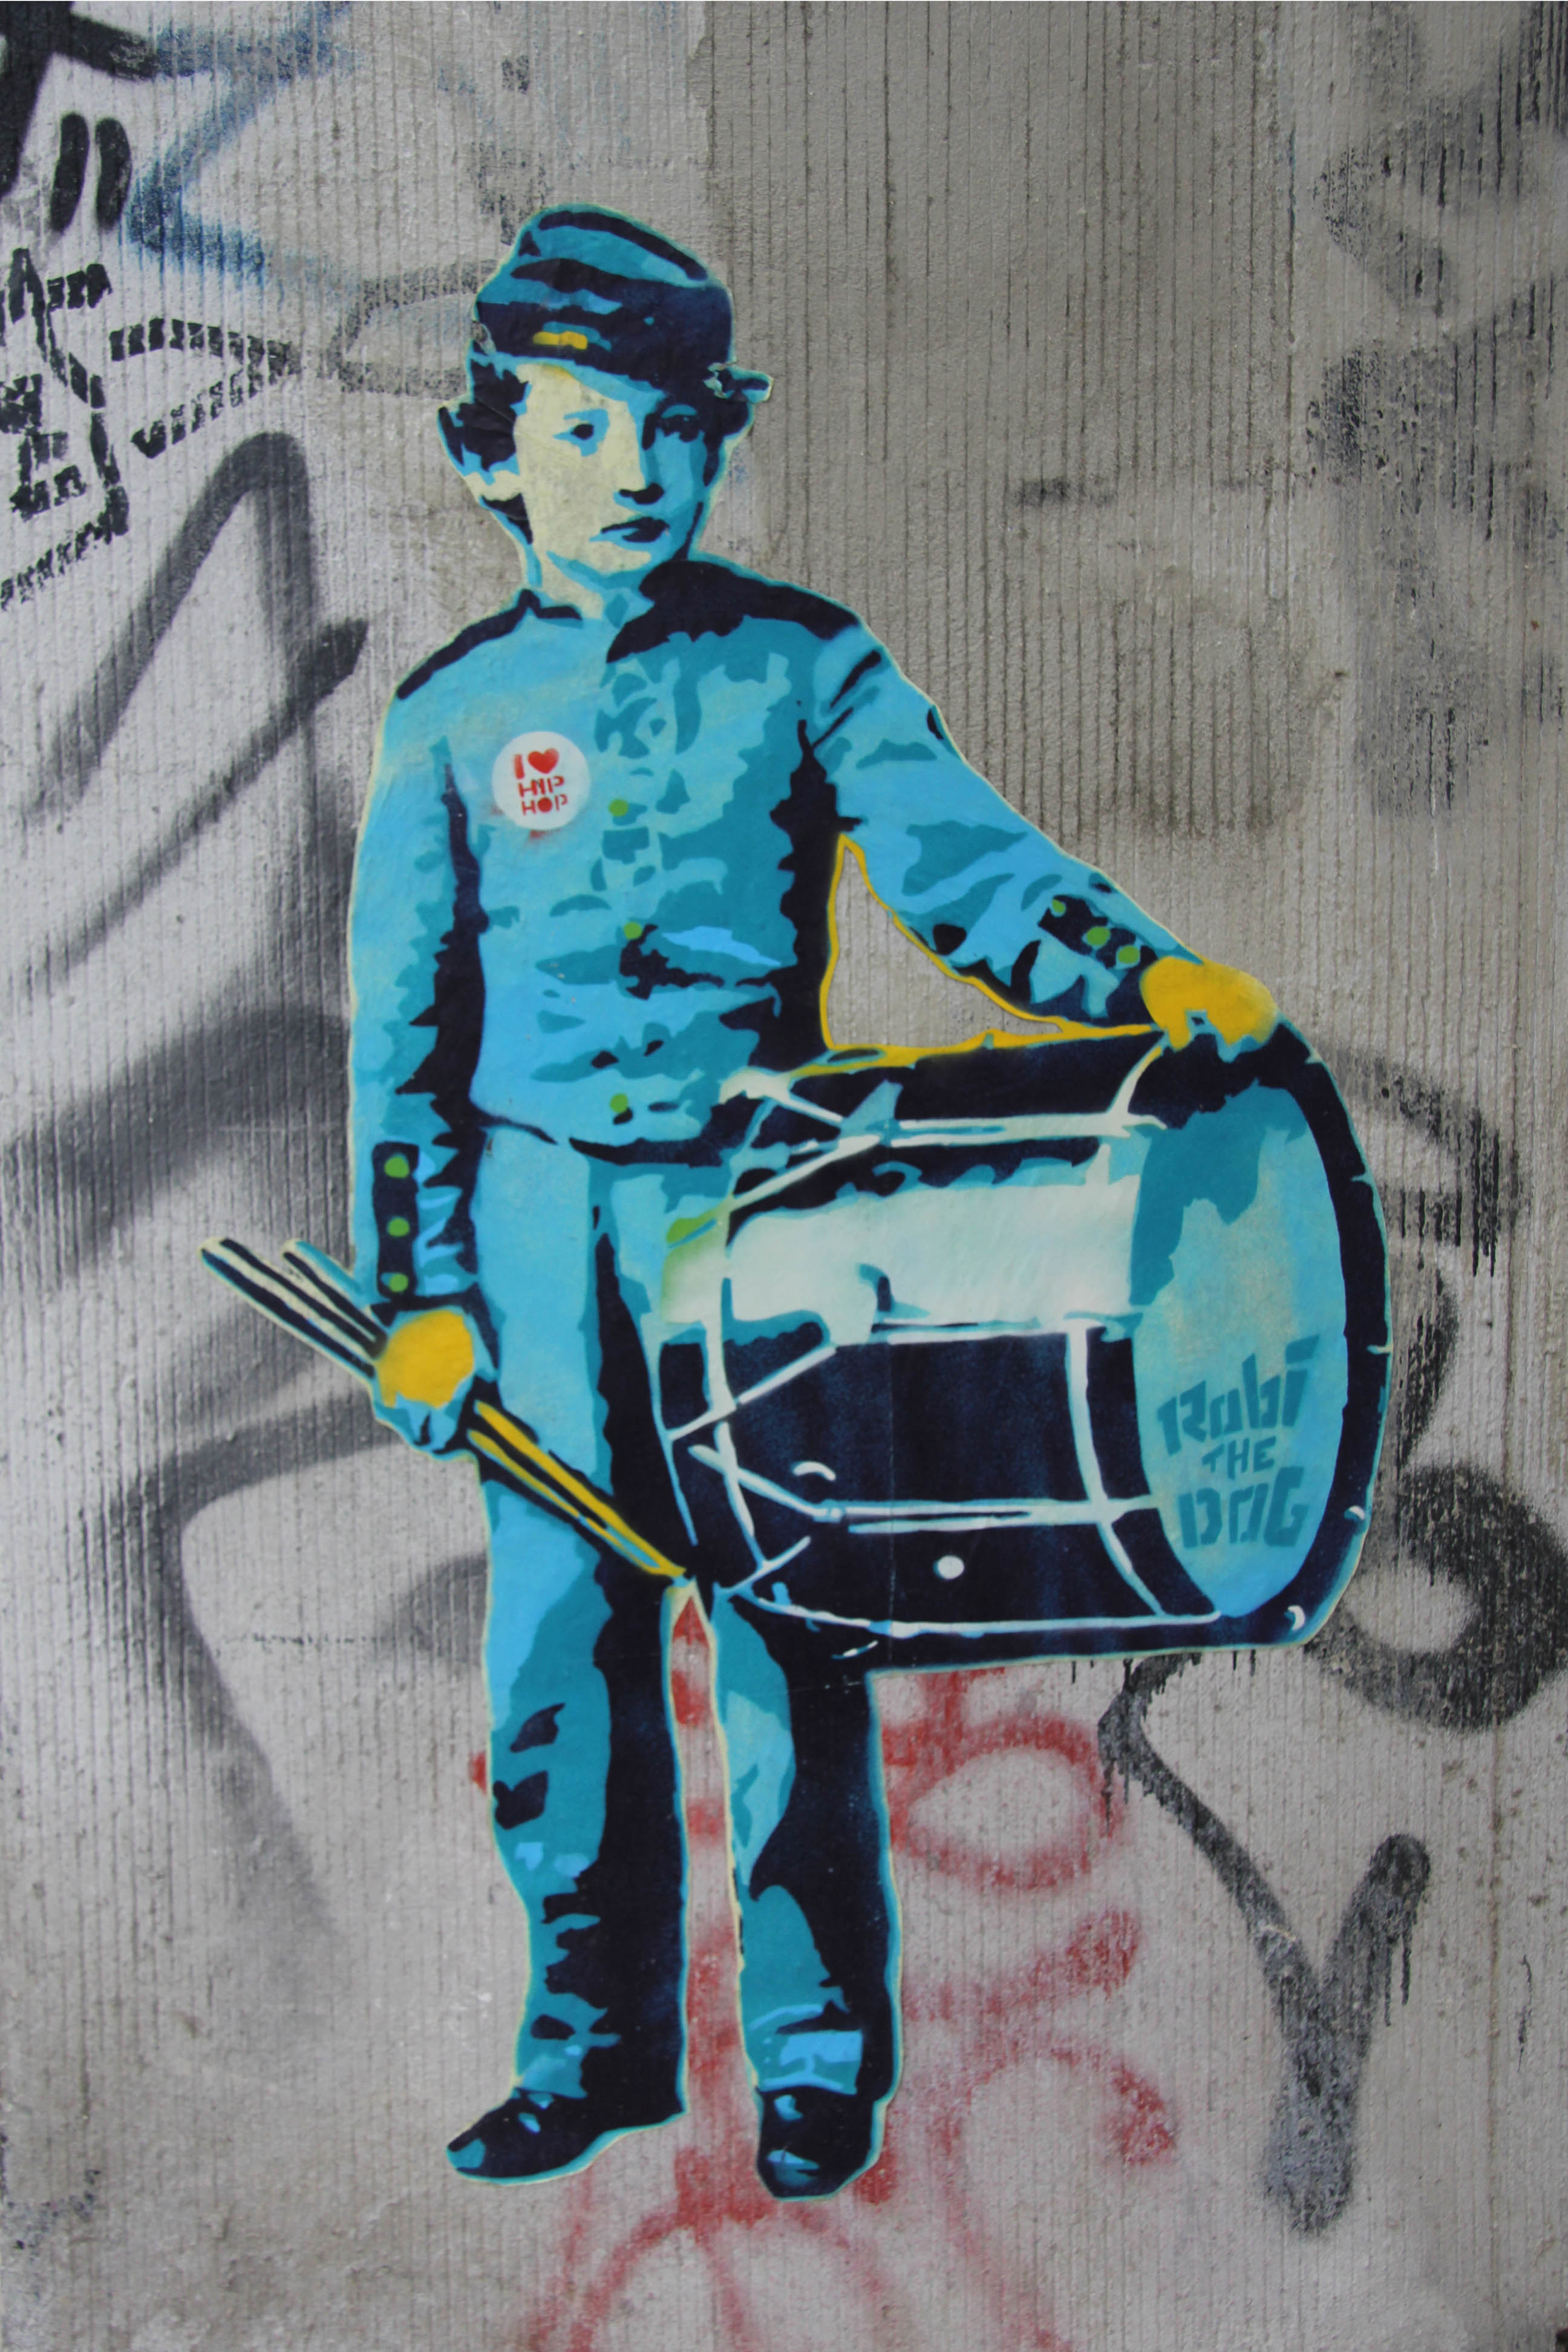 Drummer Boy: Street Art by Robi The Dog in Berlin